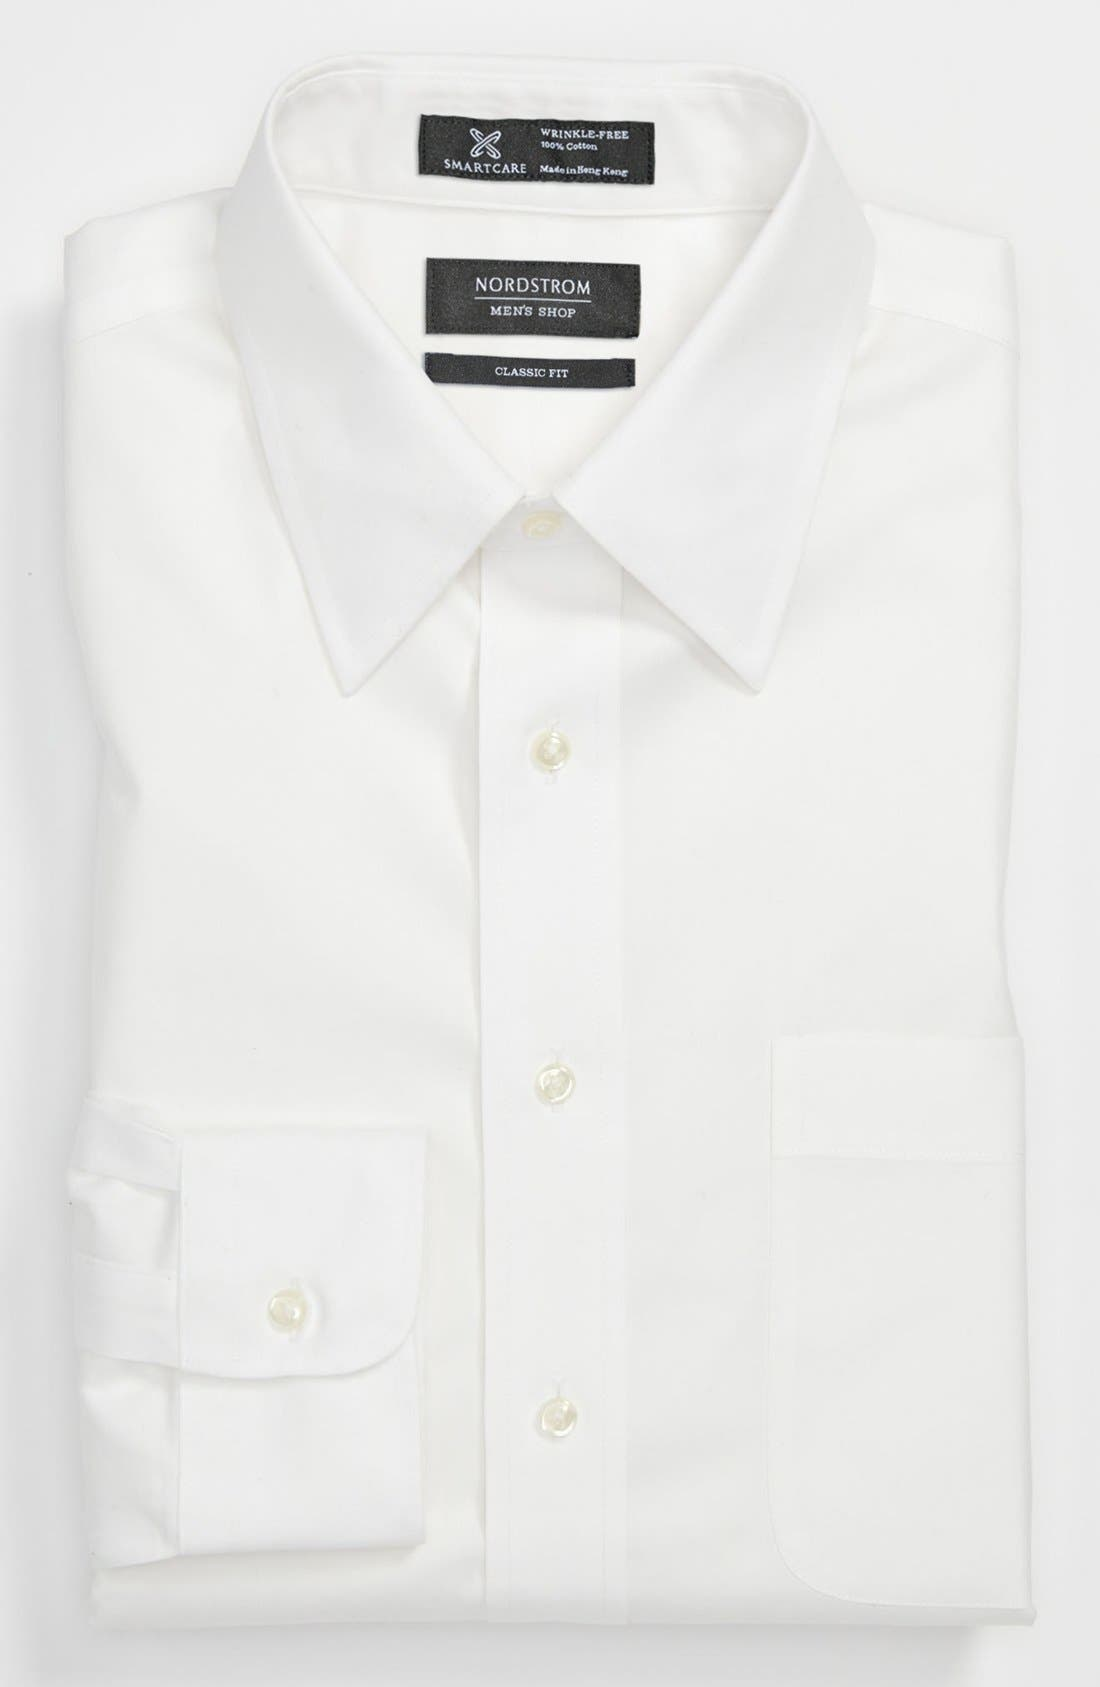 Alternate Image 1 Selected - Nordstrom Men's Shop Smartcare™ Classic Fit Solid Dress Shirt (Online Only)